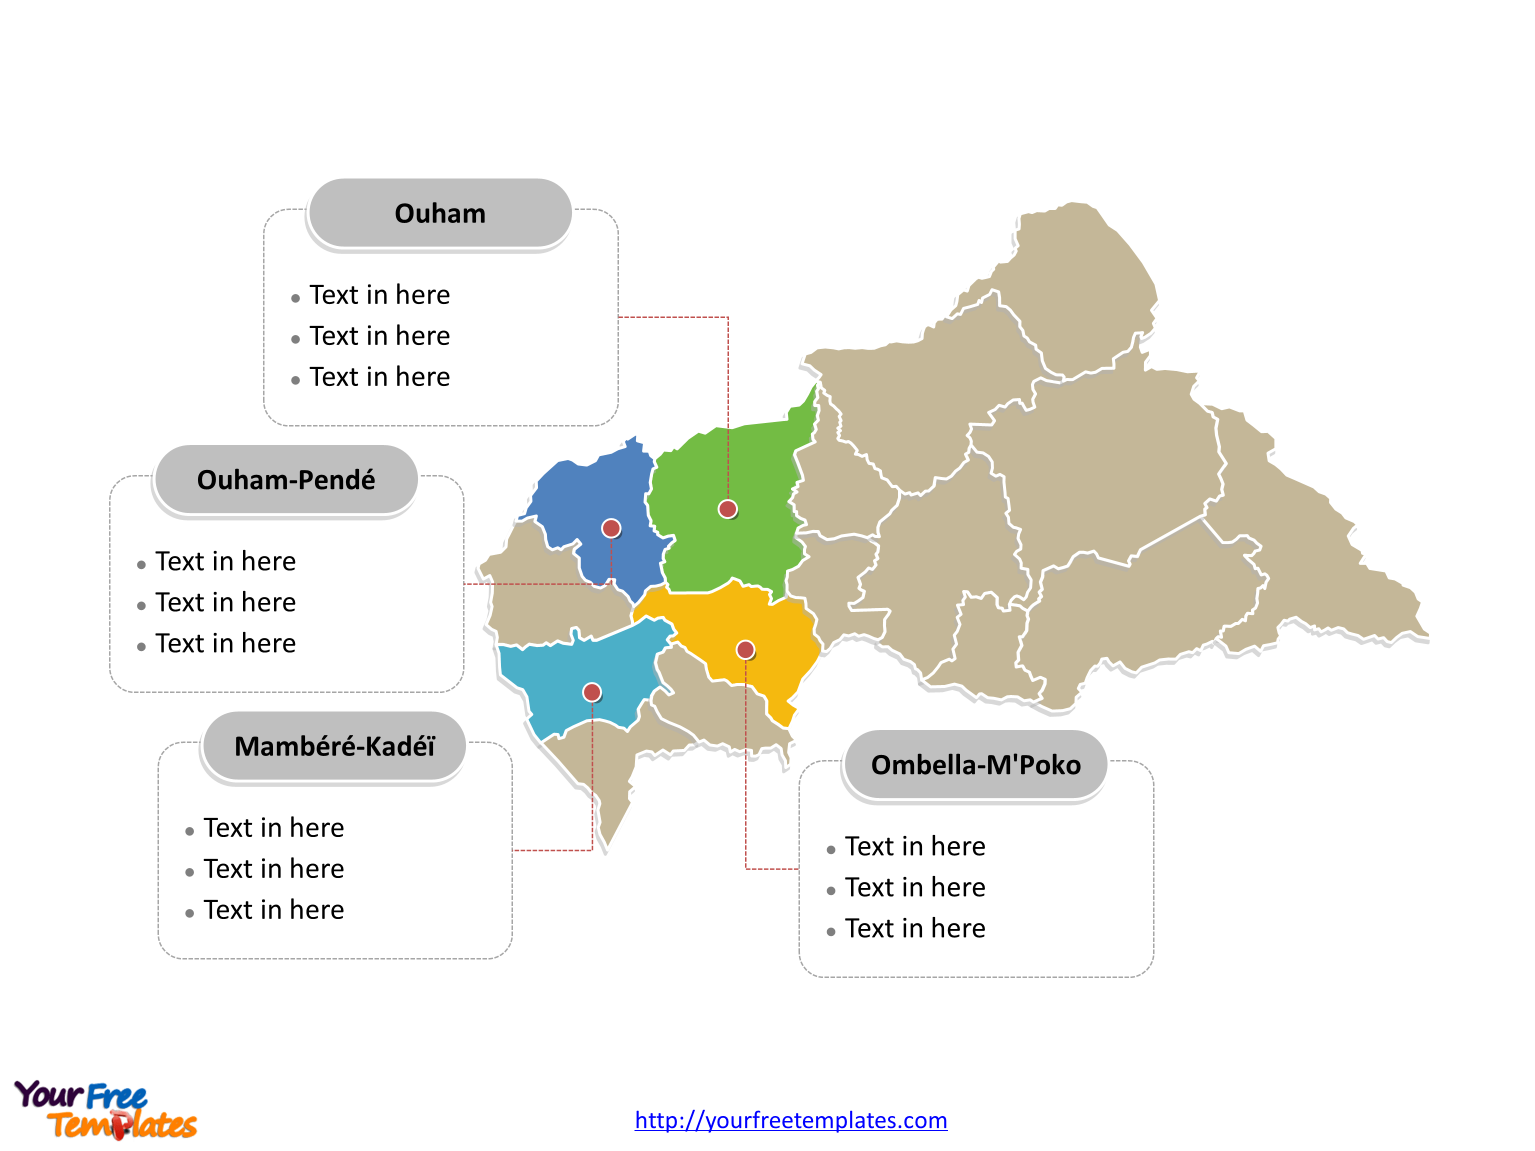 Central Africa Political map labeled with major prefectures